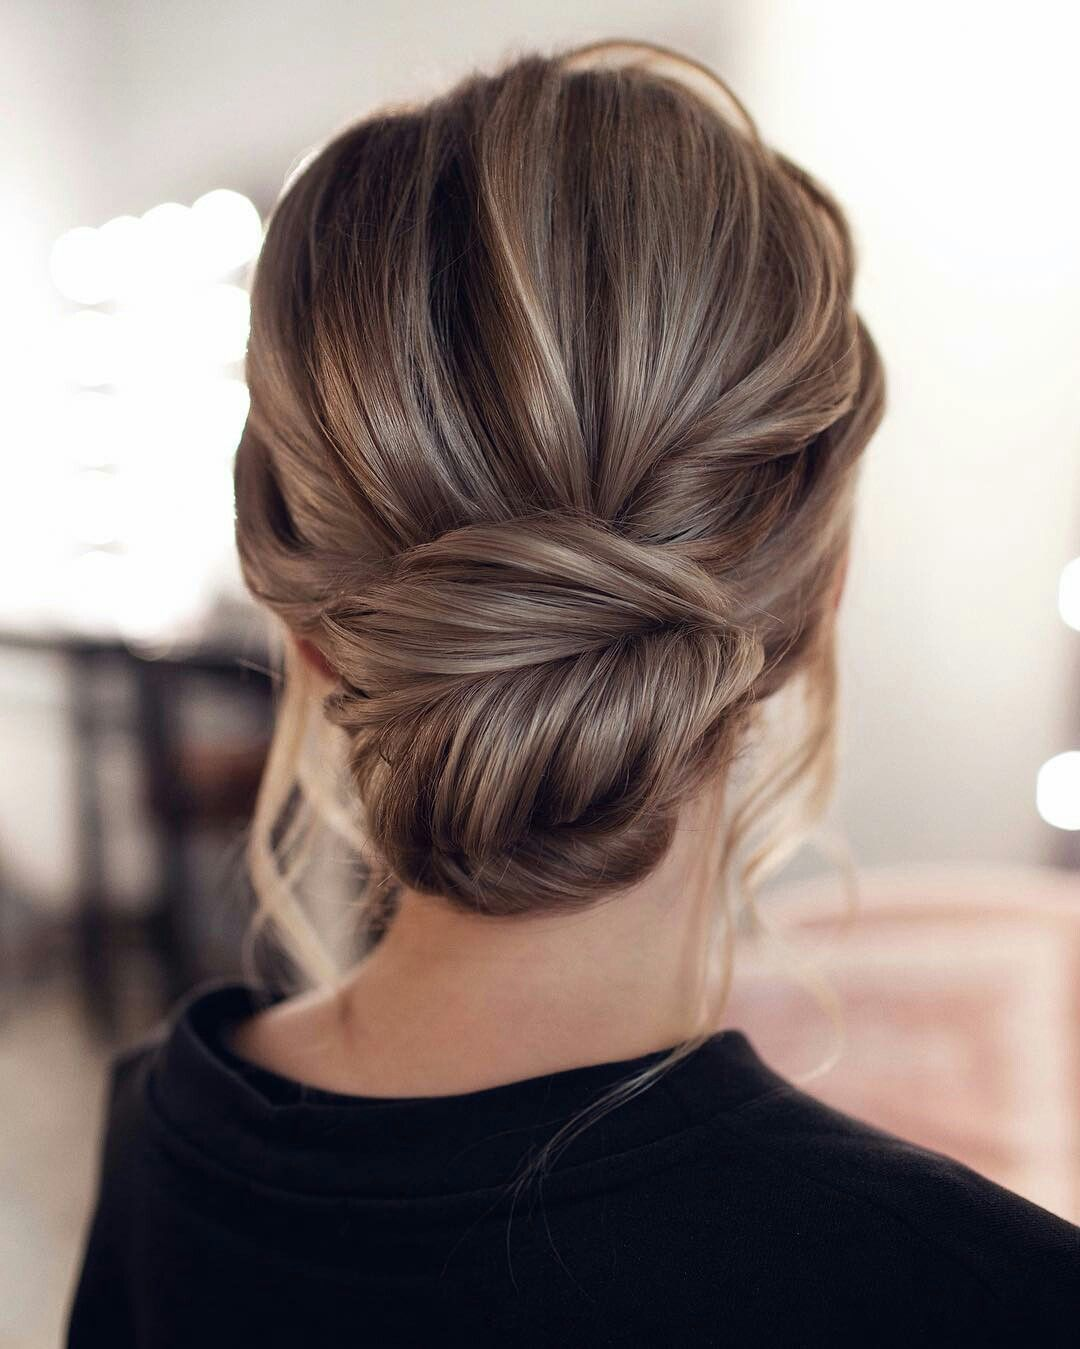 20 Inspiration Low Bun Hairstyles For Wedding 2019 2020